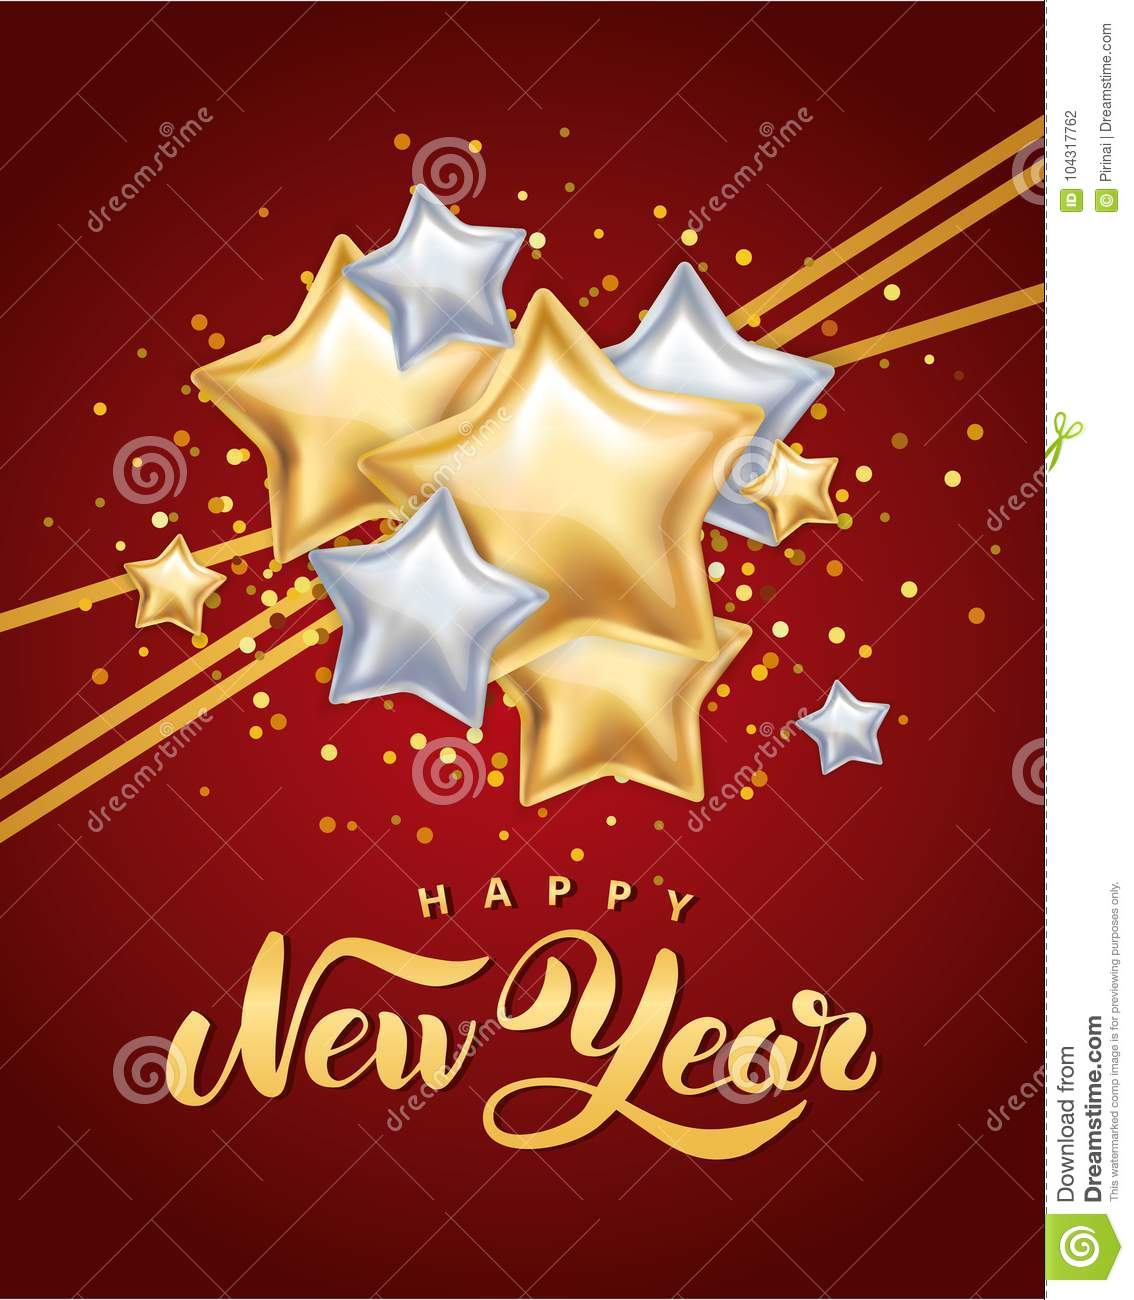 gold silver star happy new year greeting card invitation background event christmas banner with text party invitation celebration logo new year 2018